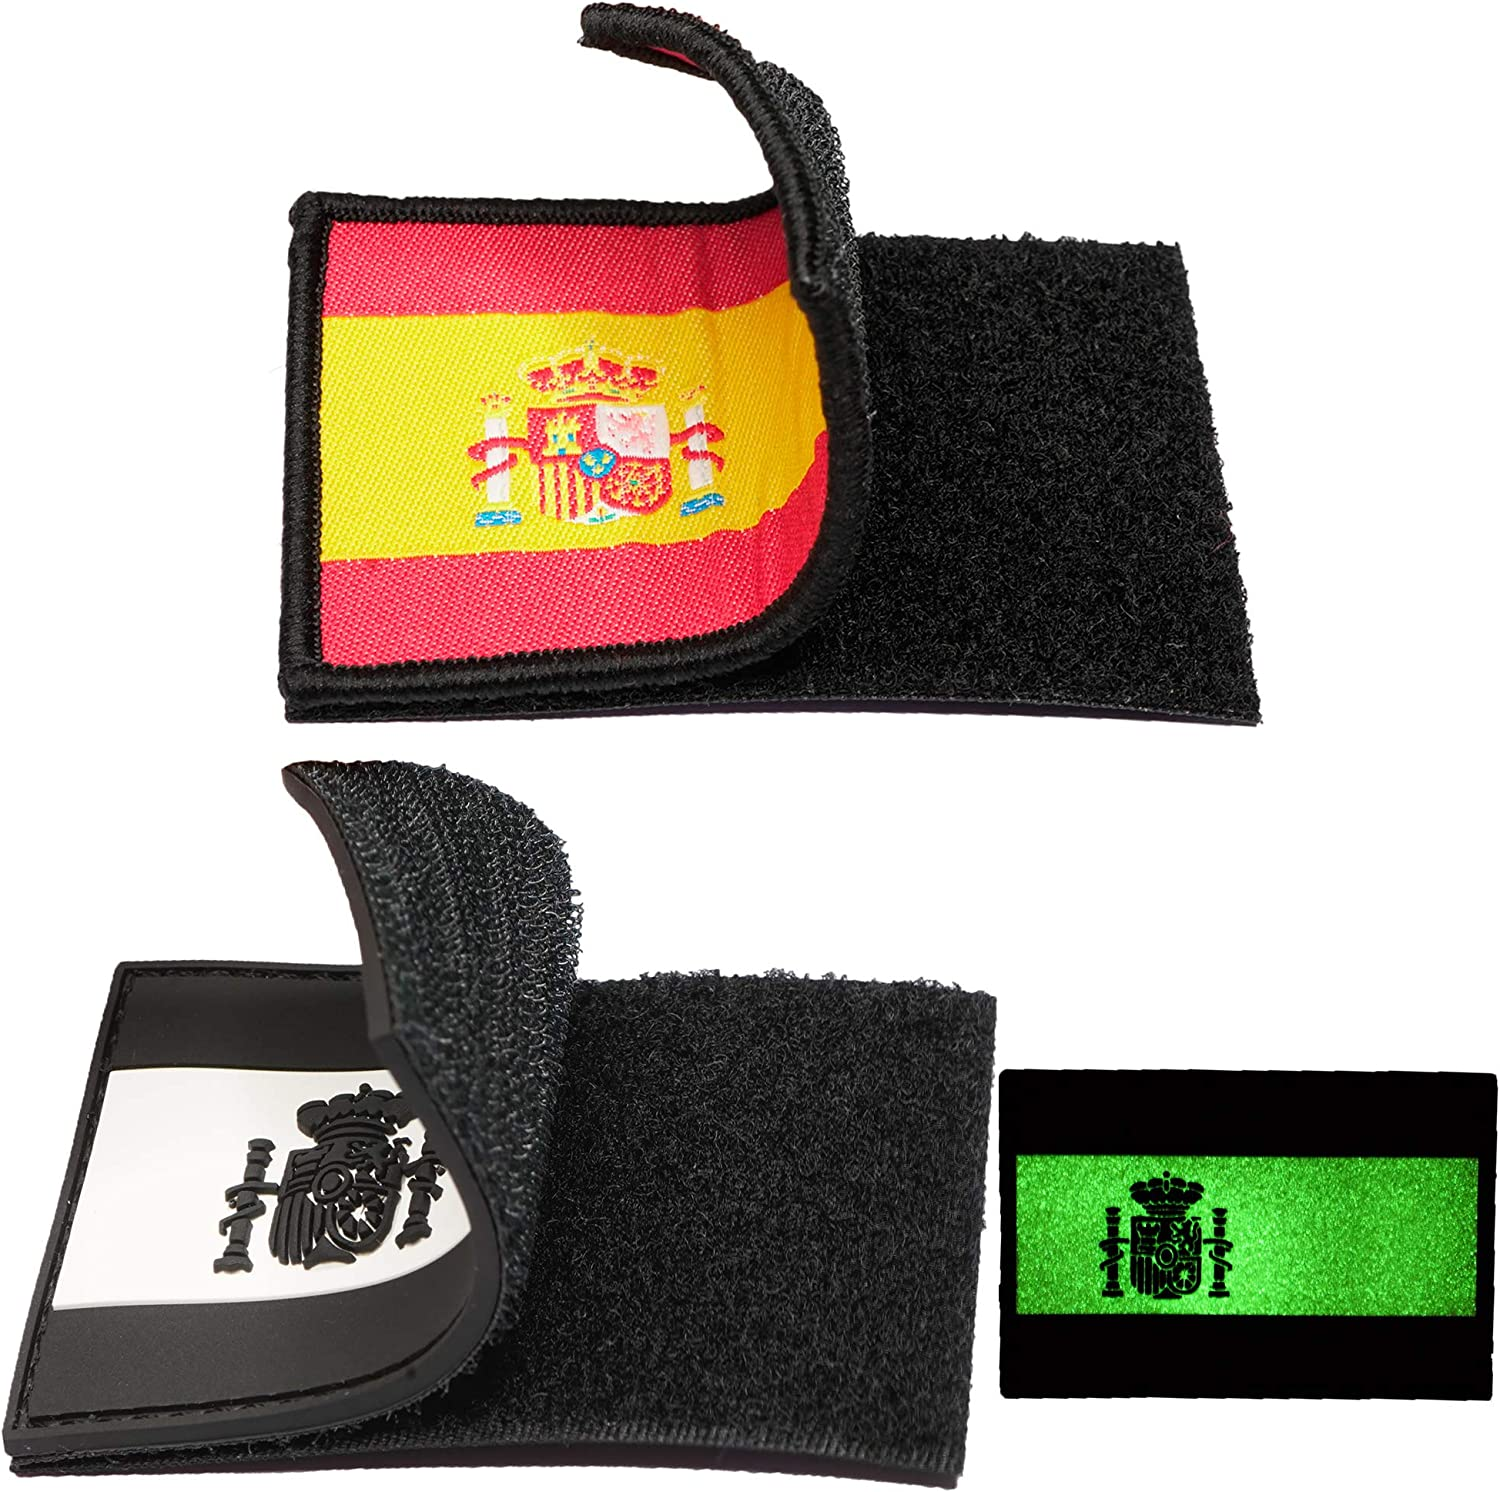 2 Parches bordados bandera España con Velcro - Color y Fluerescente - Escudos bordados - 2 Insignias - Parches Militares - 75 x 50 mm: Amazon.es: Hogar